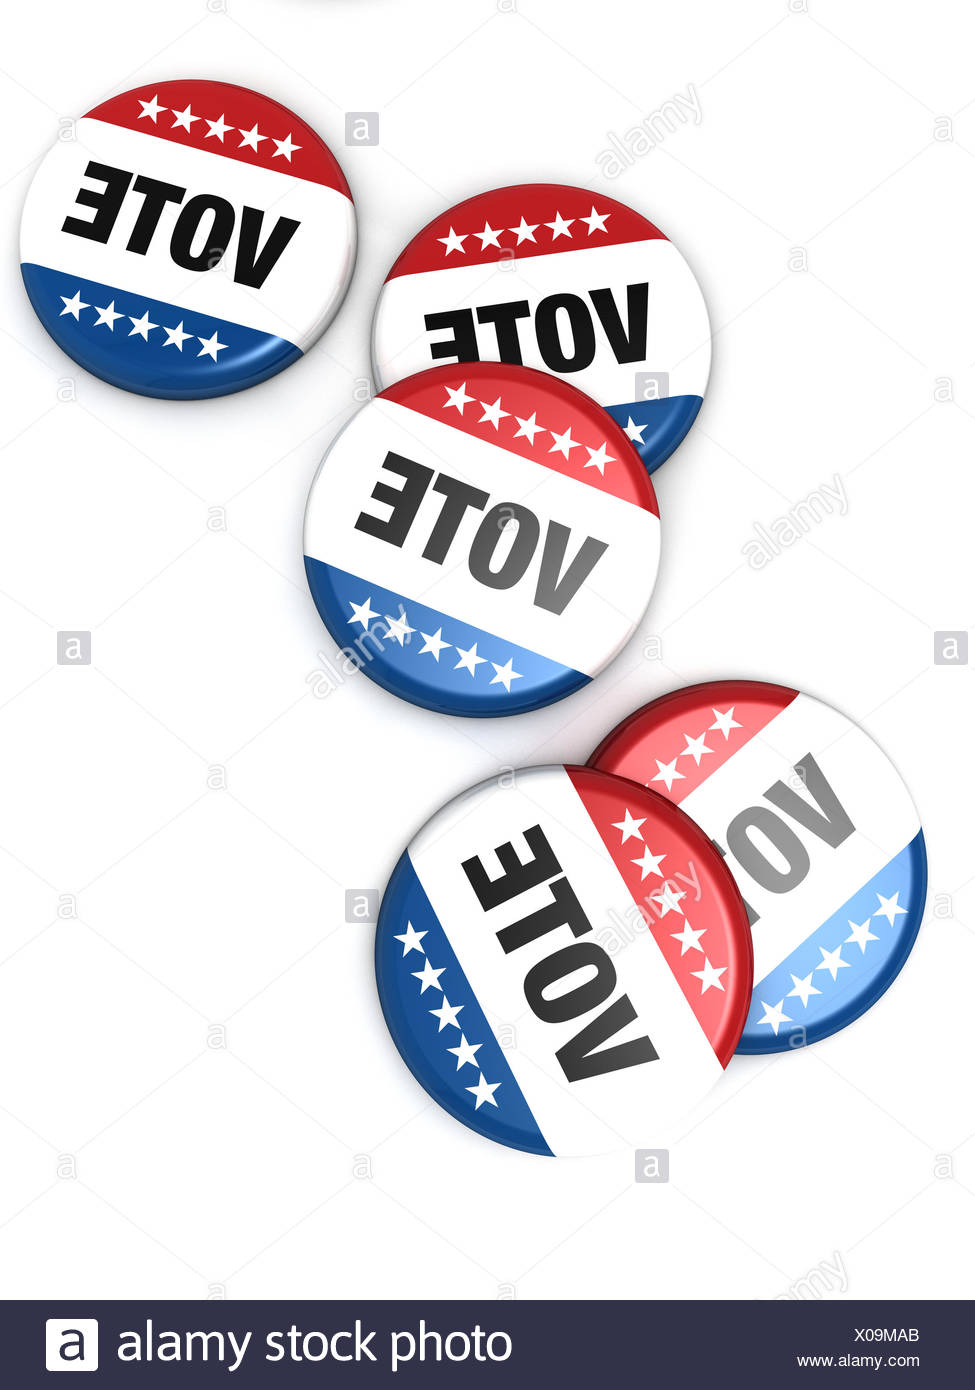 political, usa, choose, elections, politic, apart, extra, insulated, political, - Stock Image